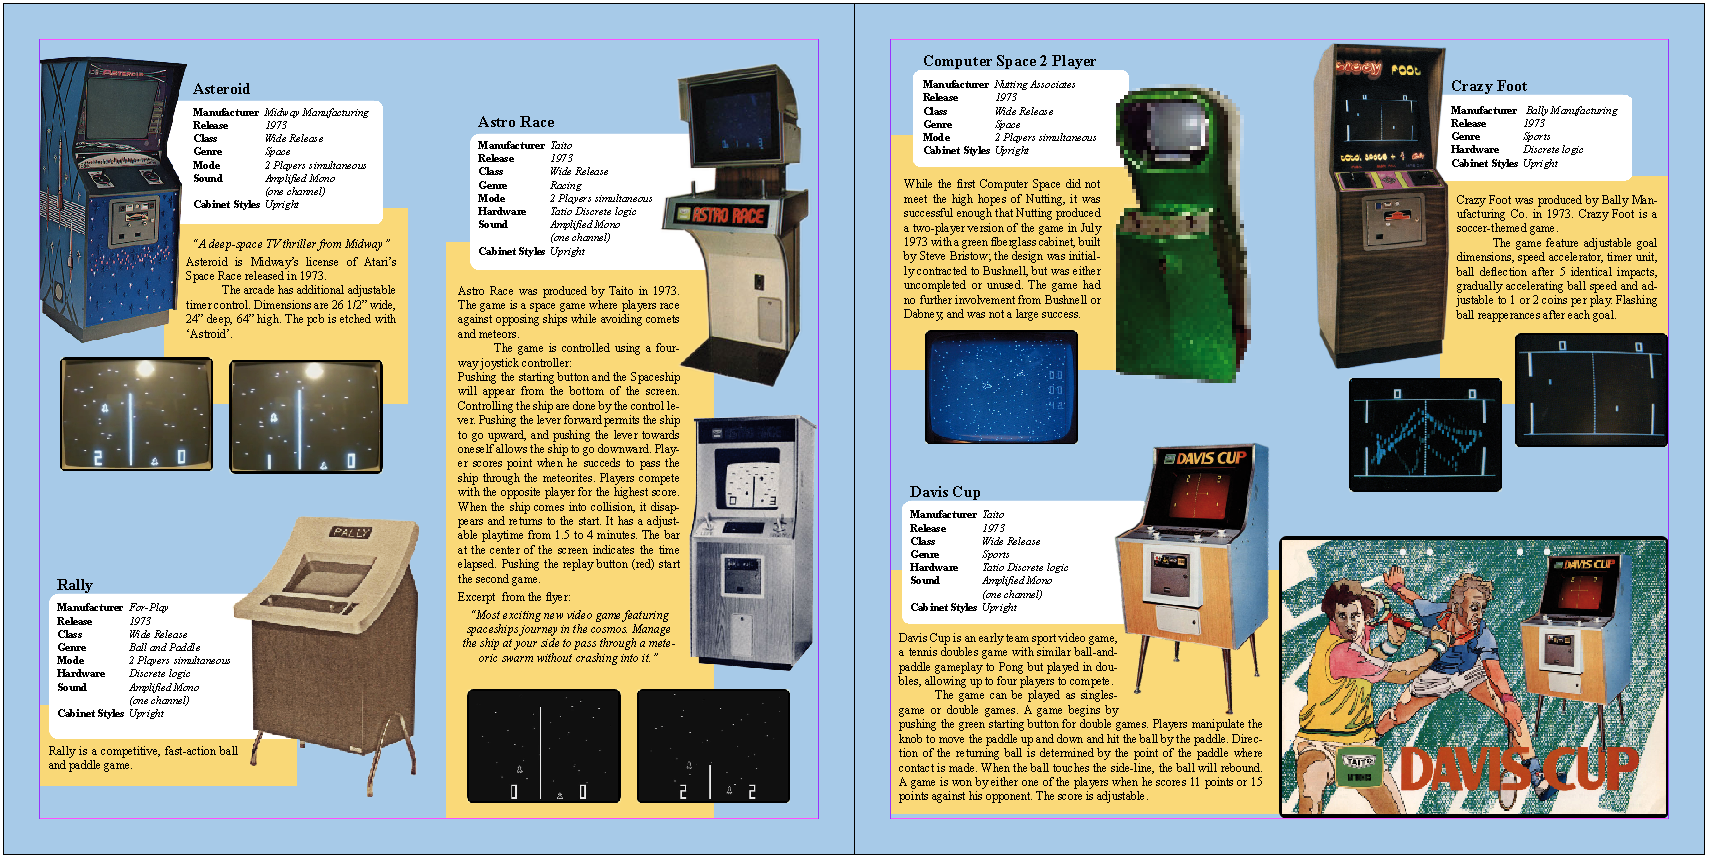 The Encyclopedia Of Arcade Video Games Pdf